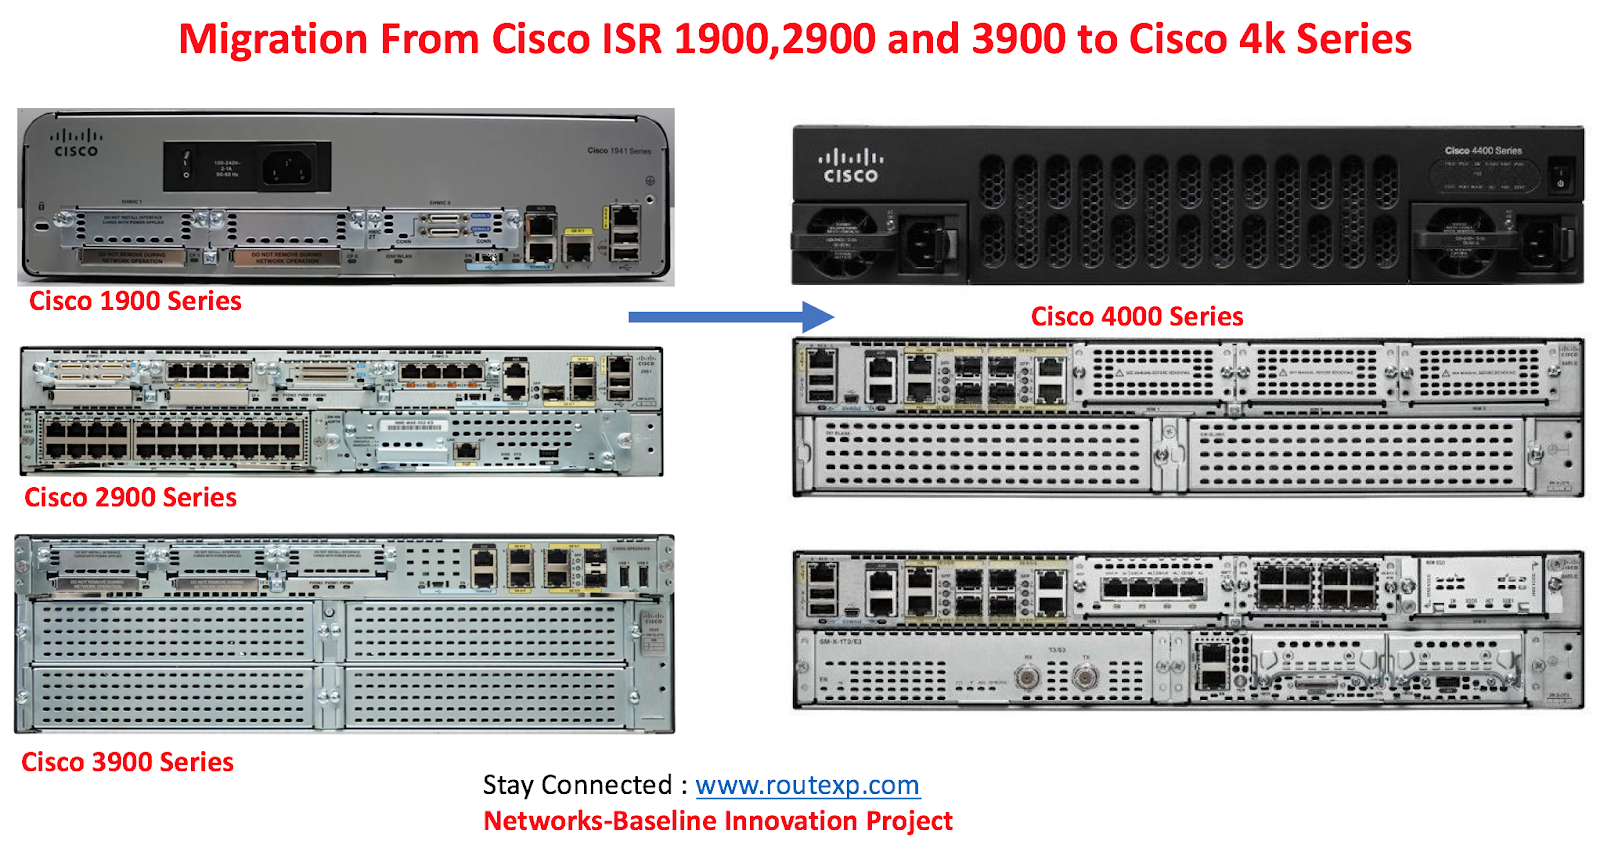 migration from cisco isr 1900 2900 3900 to cisco 4000 isr routersfig 1 1 cisco migration path isr routers